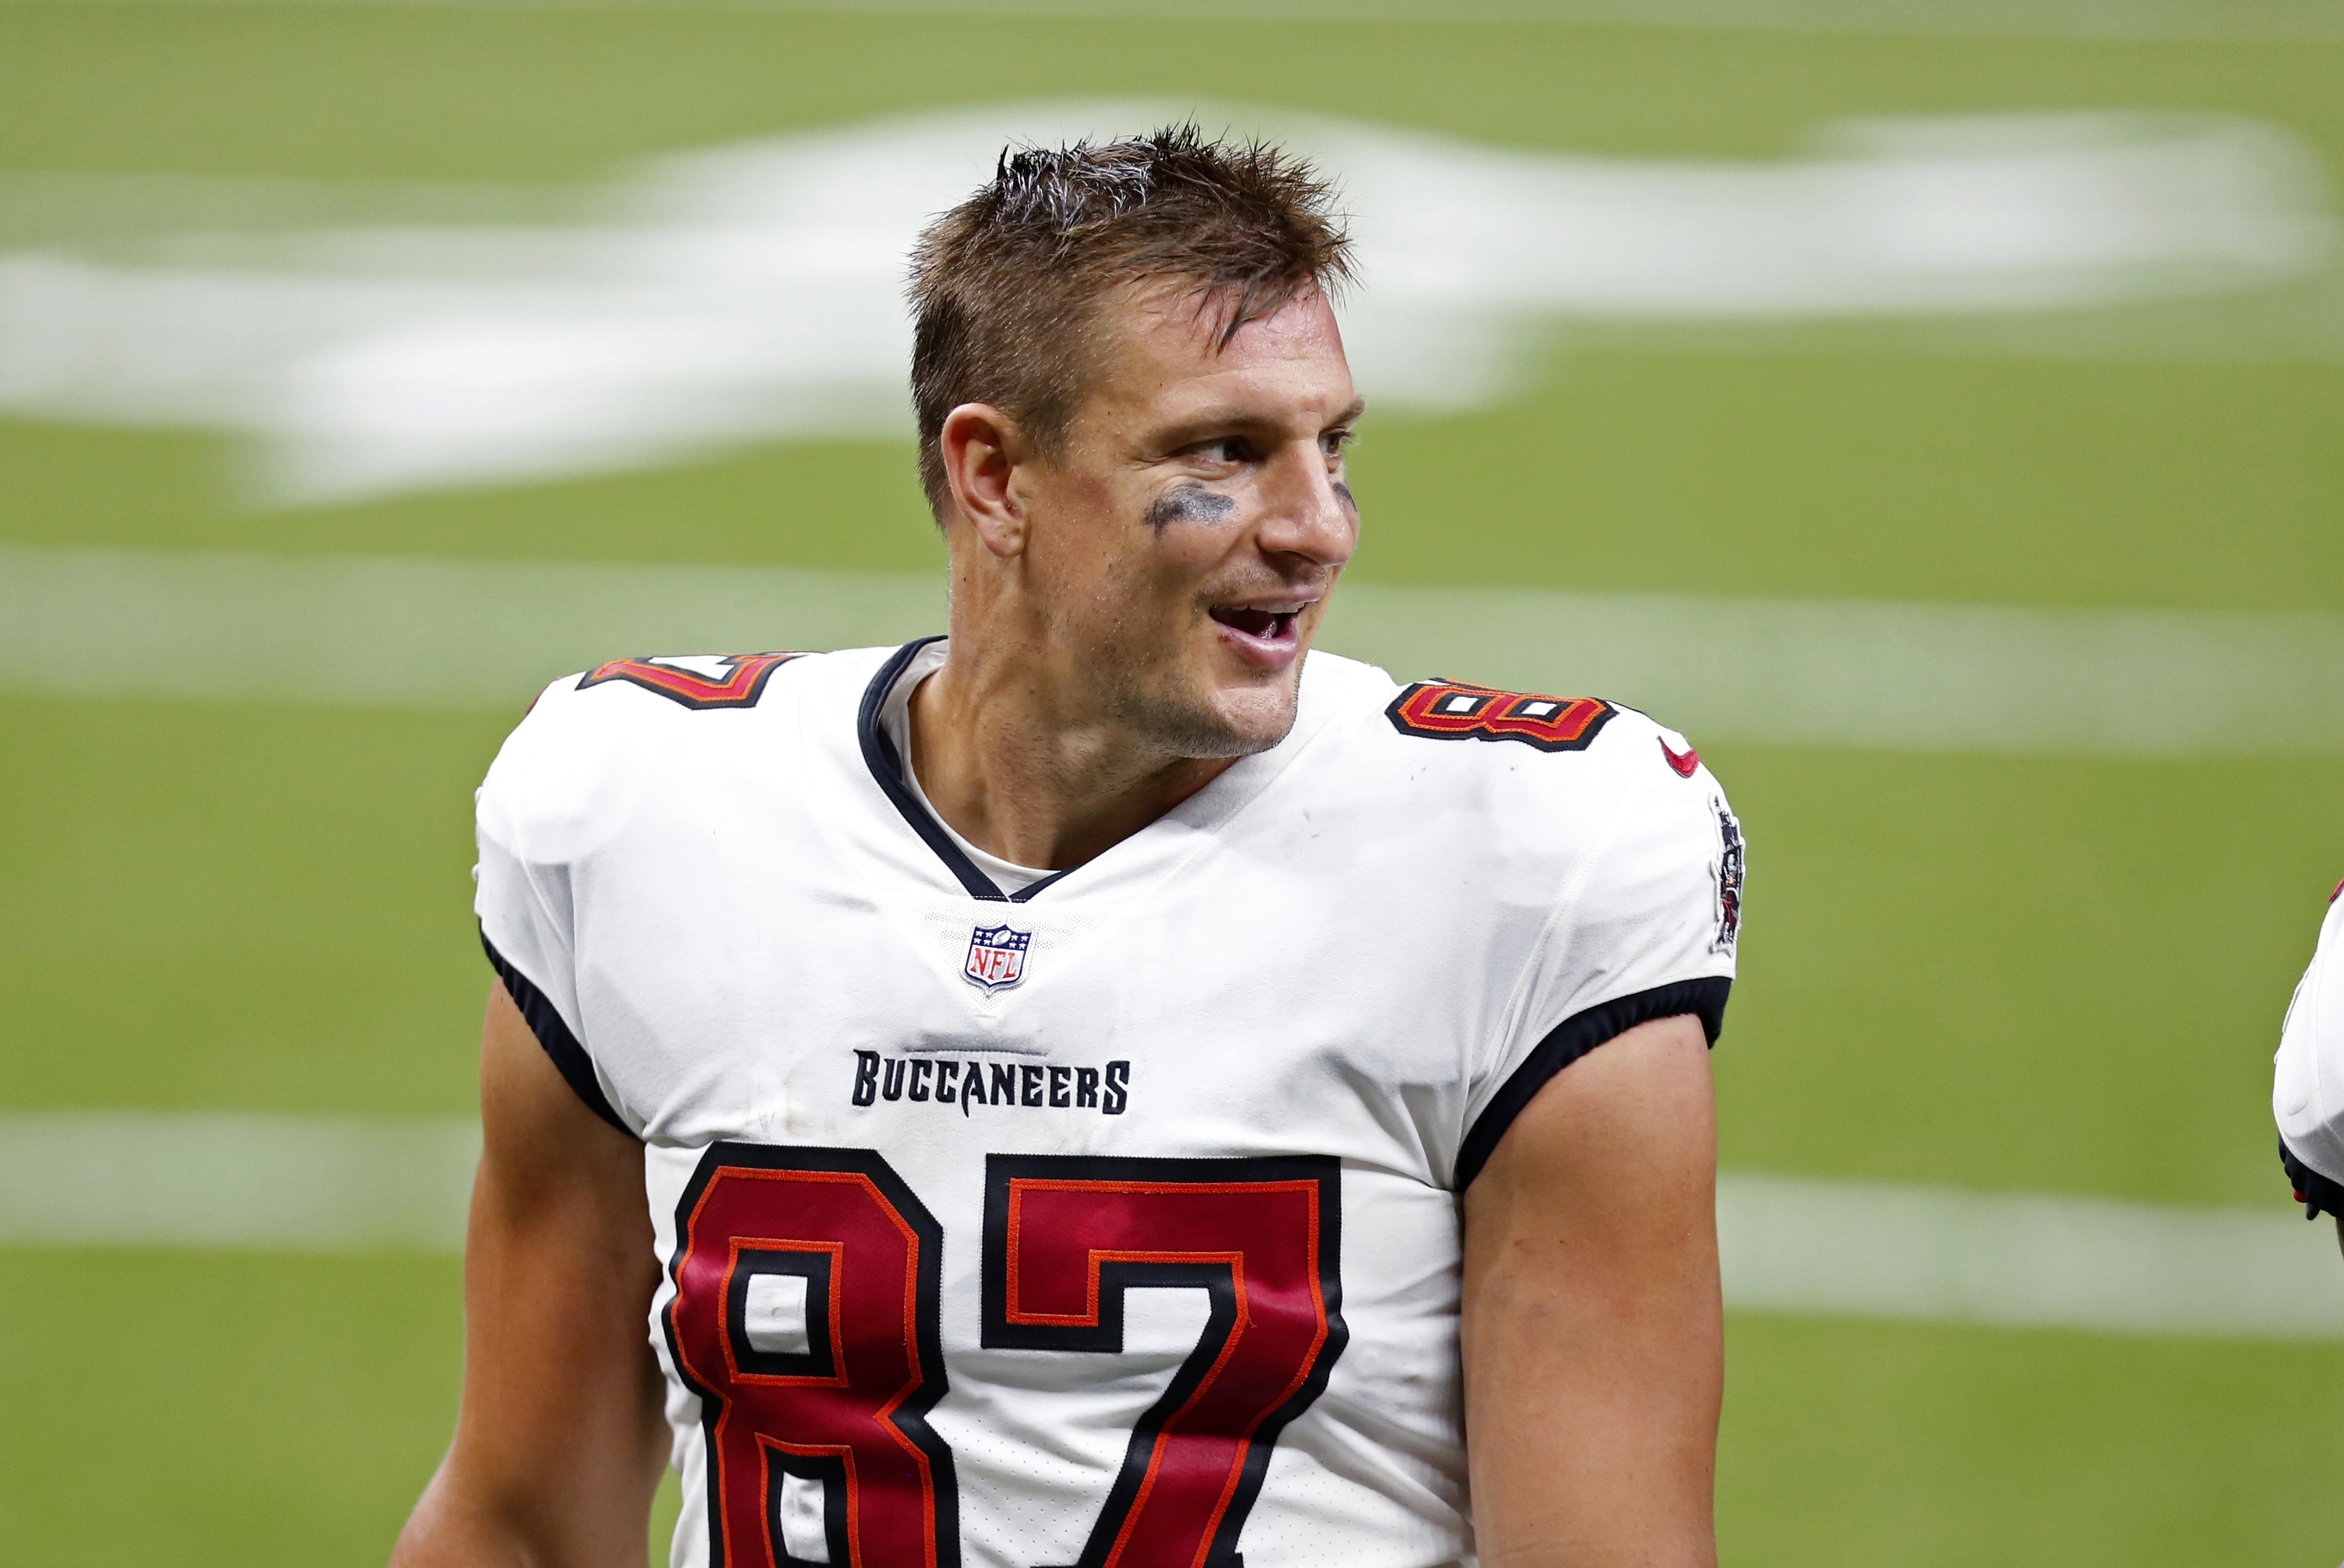 Rob Gronkowski's locker room impact 'equally as amazing' as Tom Brady's,  says Buccaneers general manager Jason Licht - masslive.com